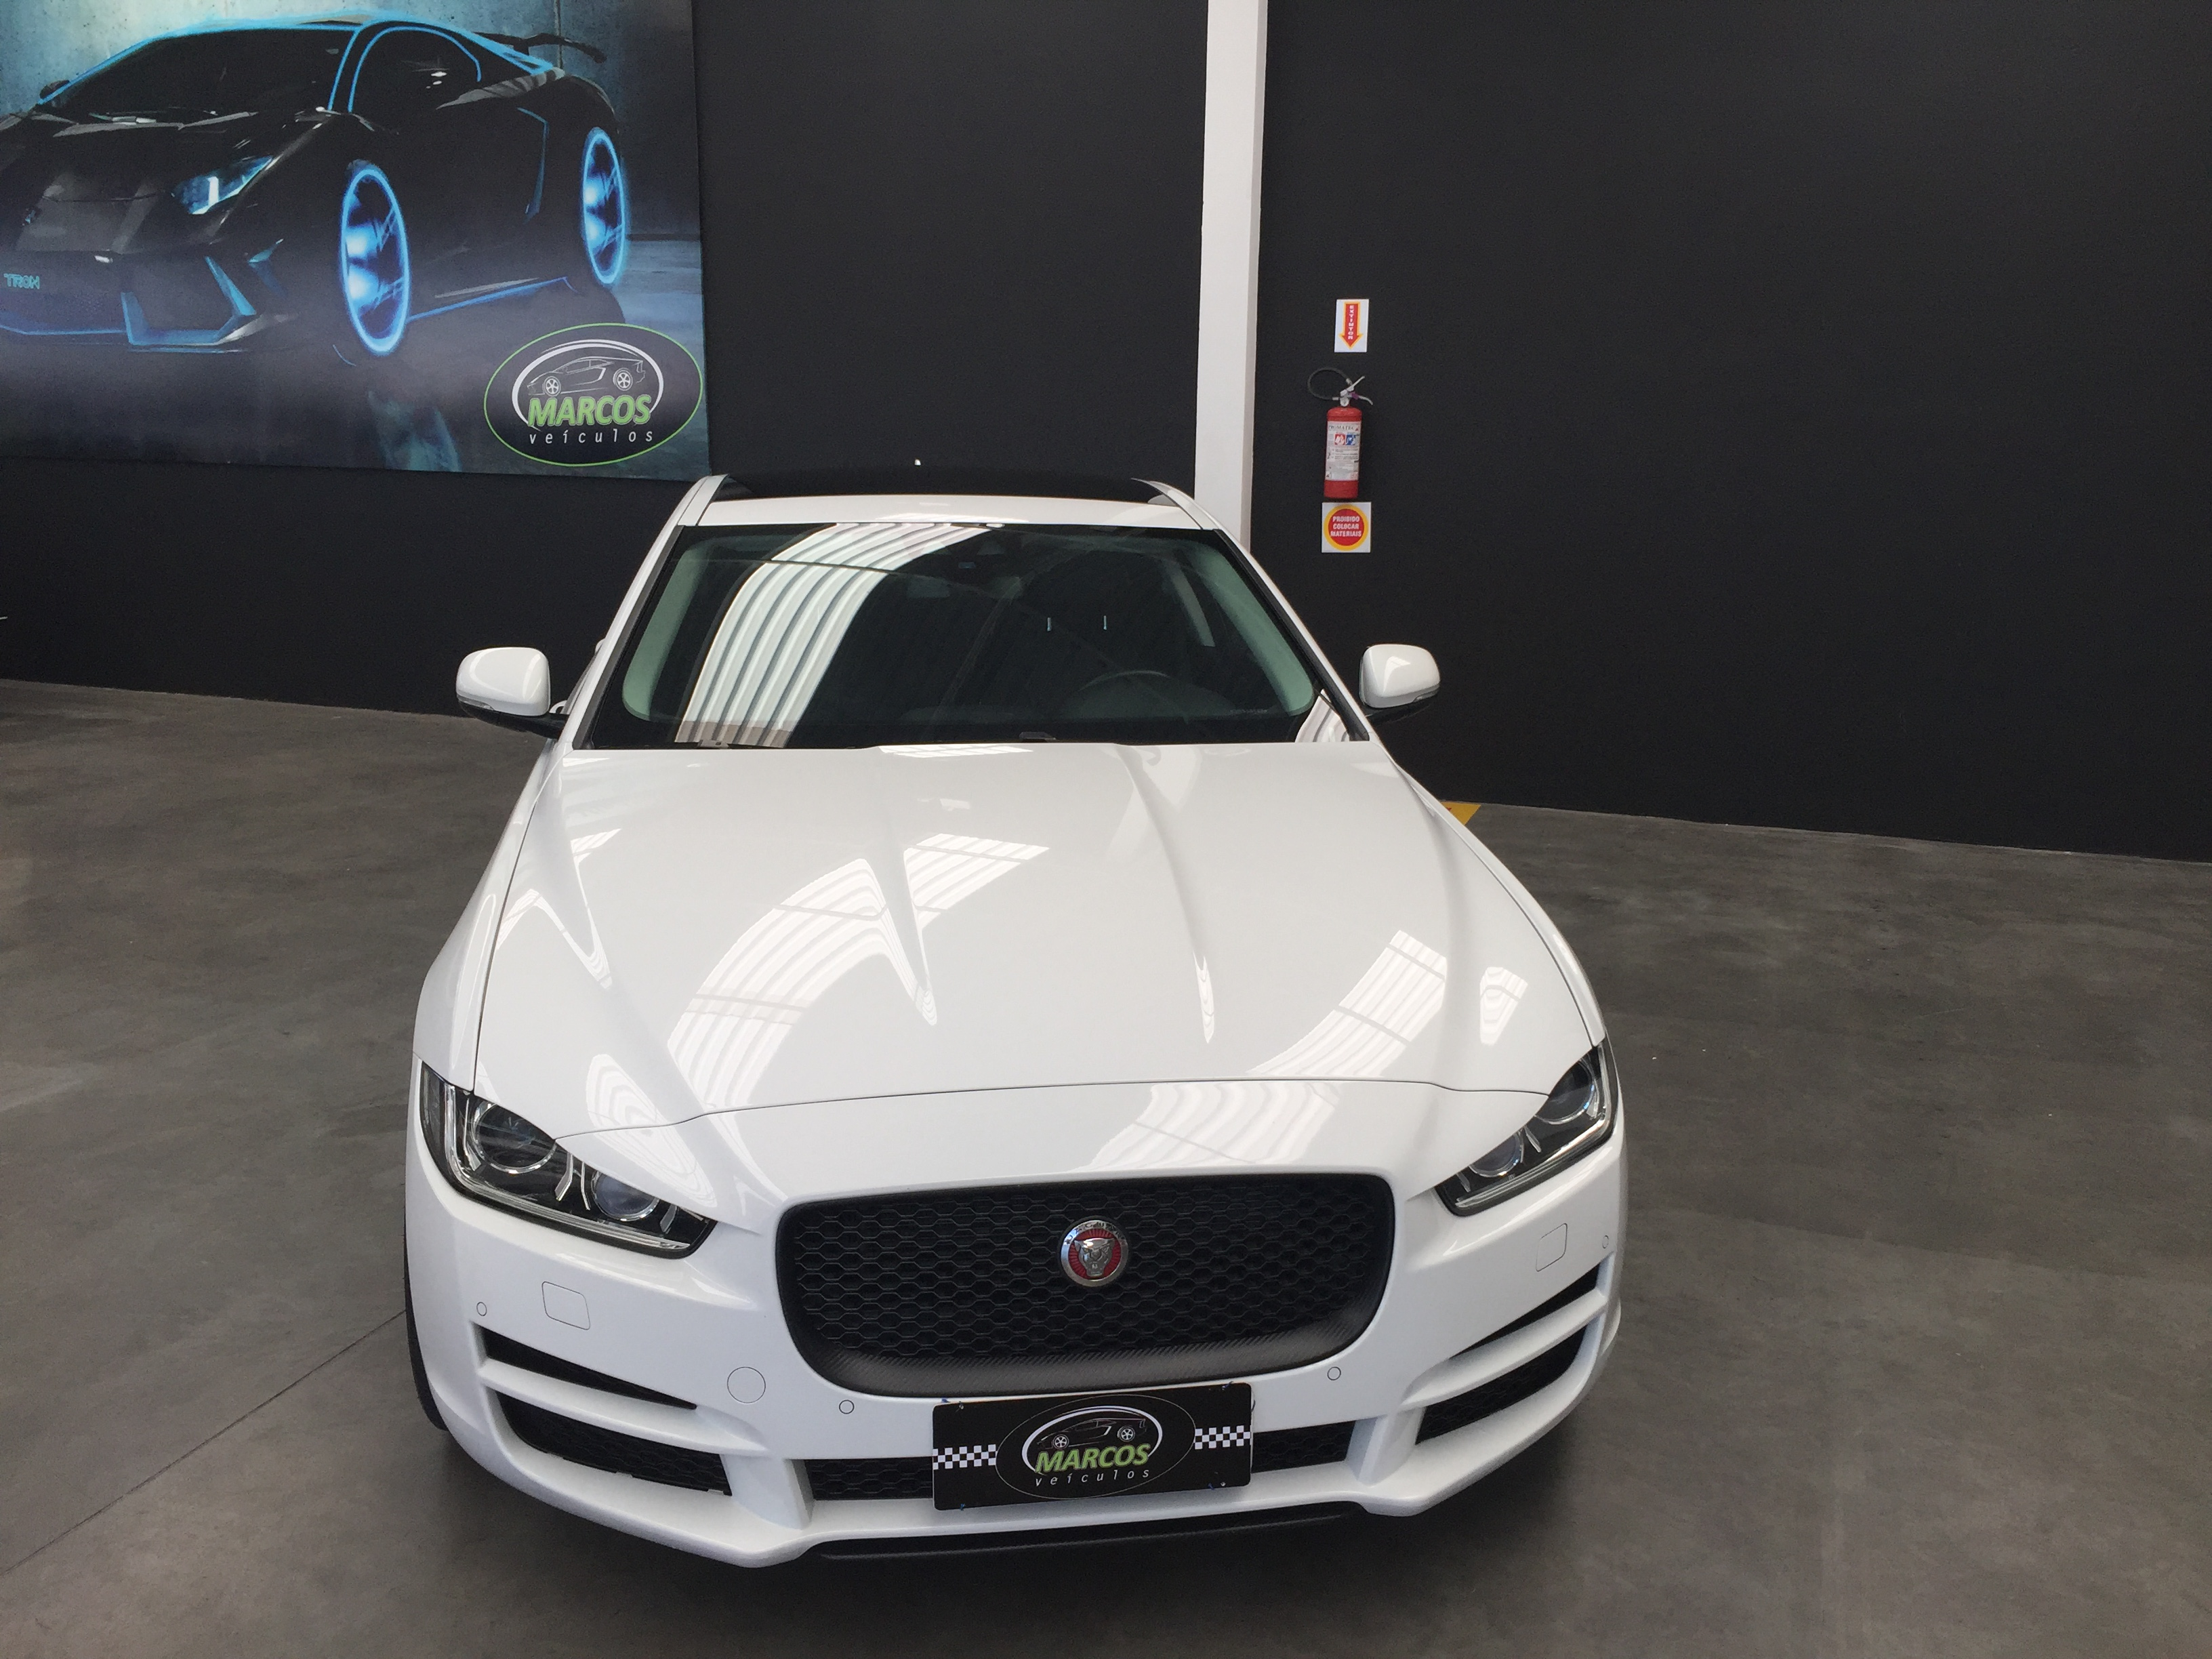 Lindo Jaguar XE 2.0 Turbocharged Pure 240cv Aut